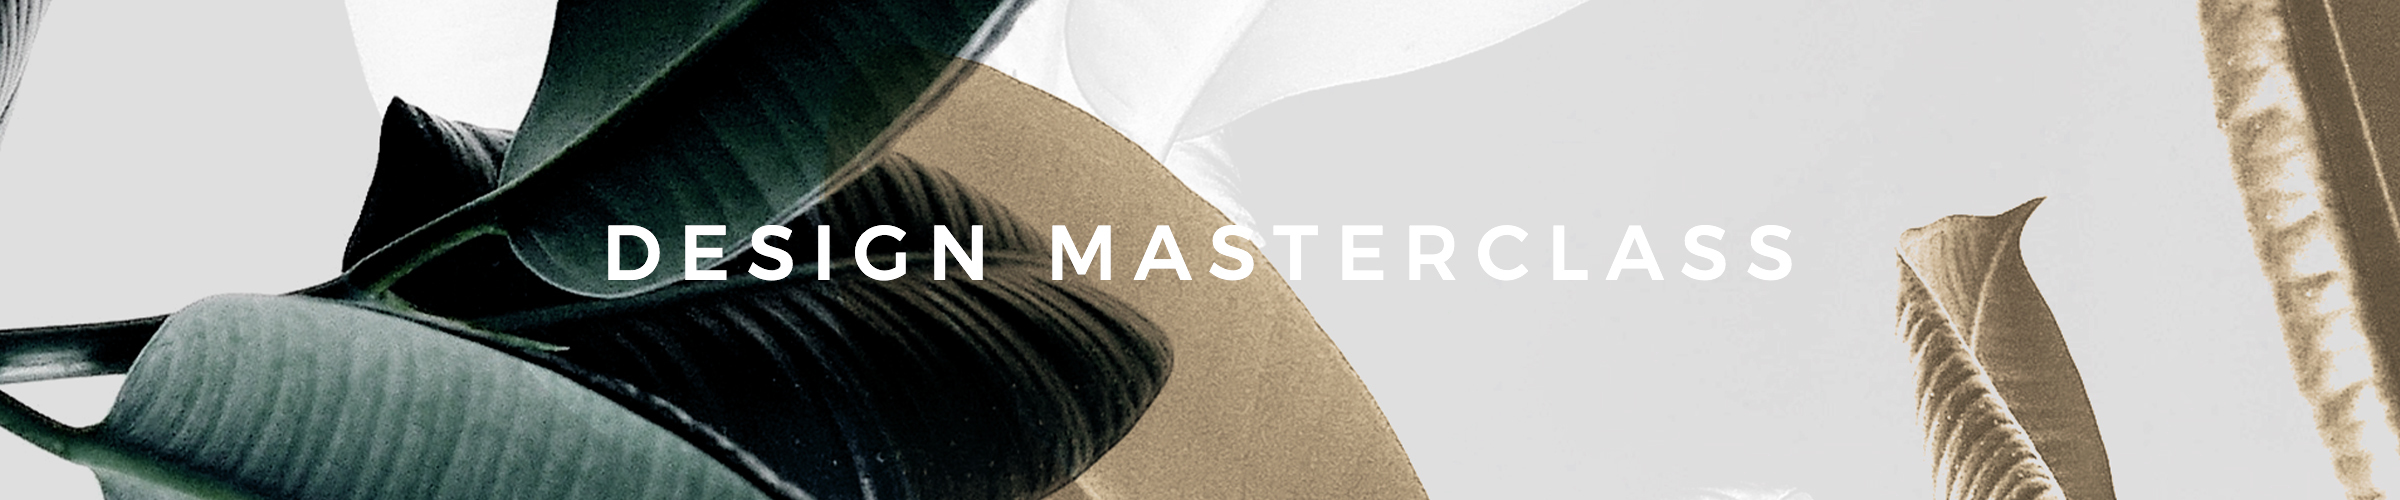 Cover design masterclass header